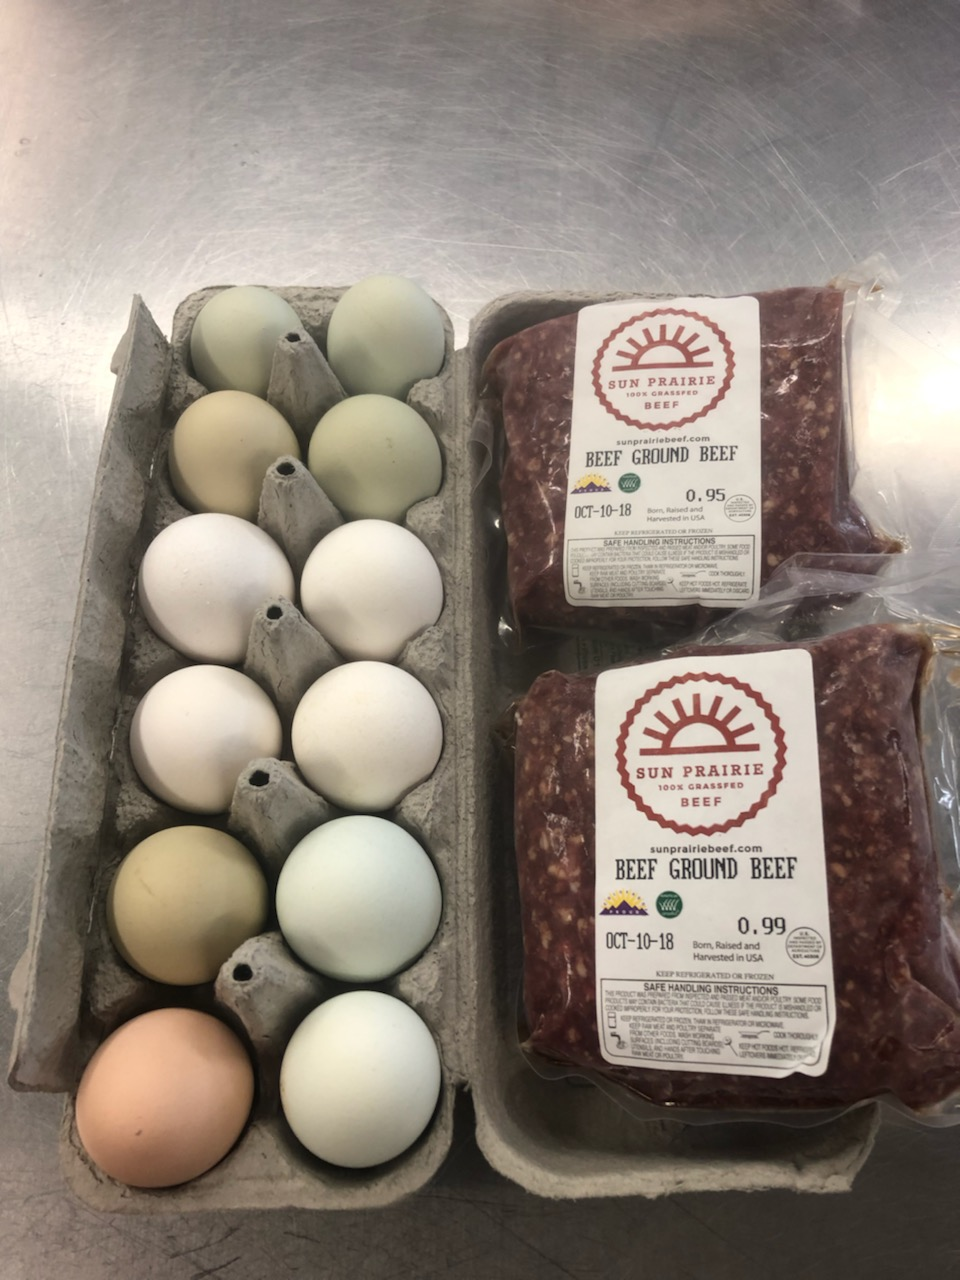 Protein Share - Beef (2 lbs ground) & Eggs (1 dozen)